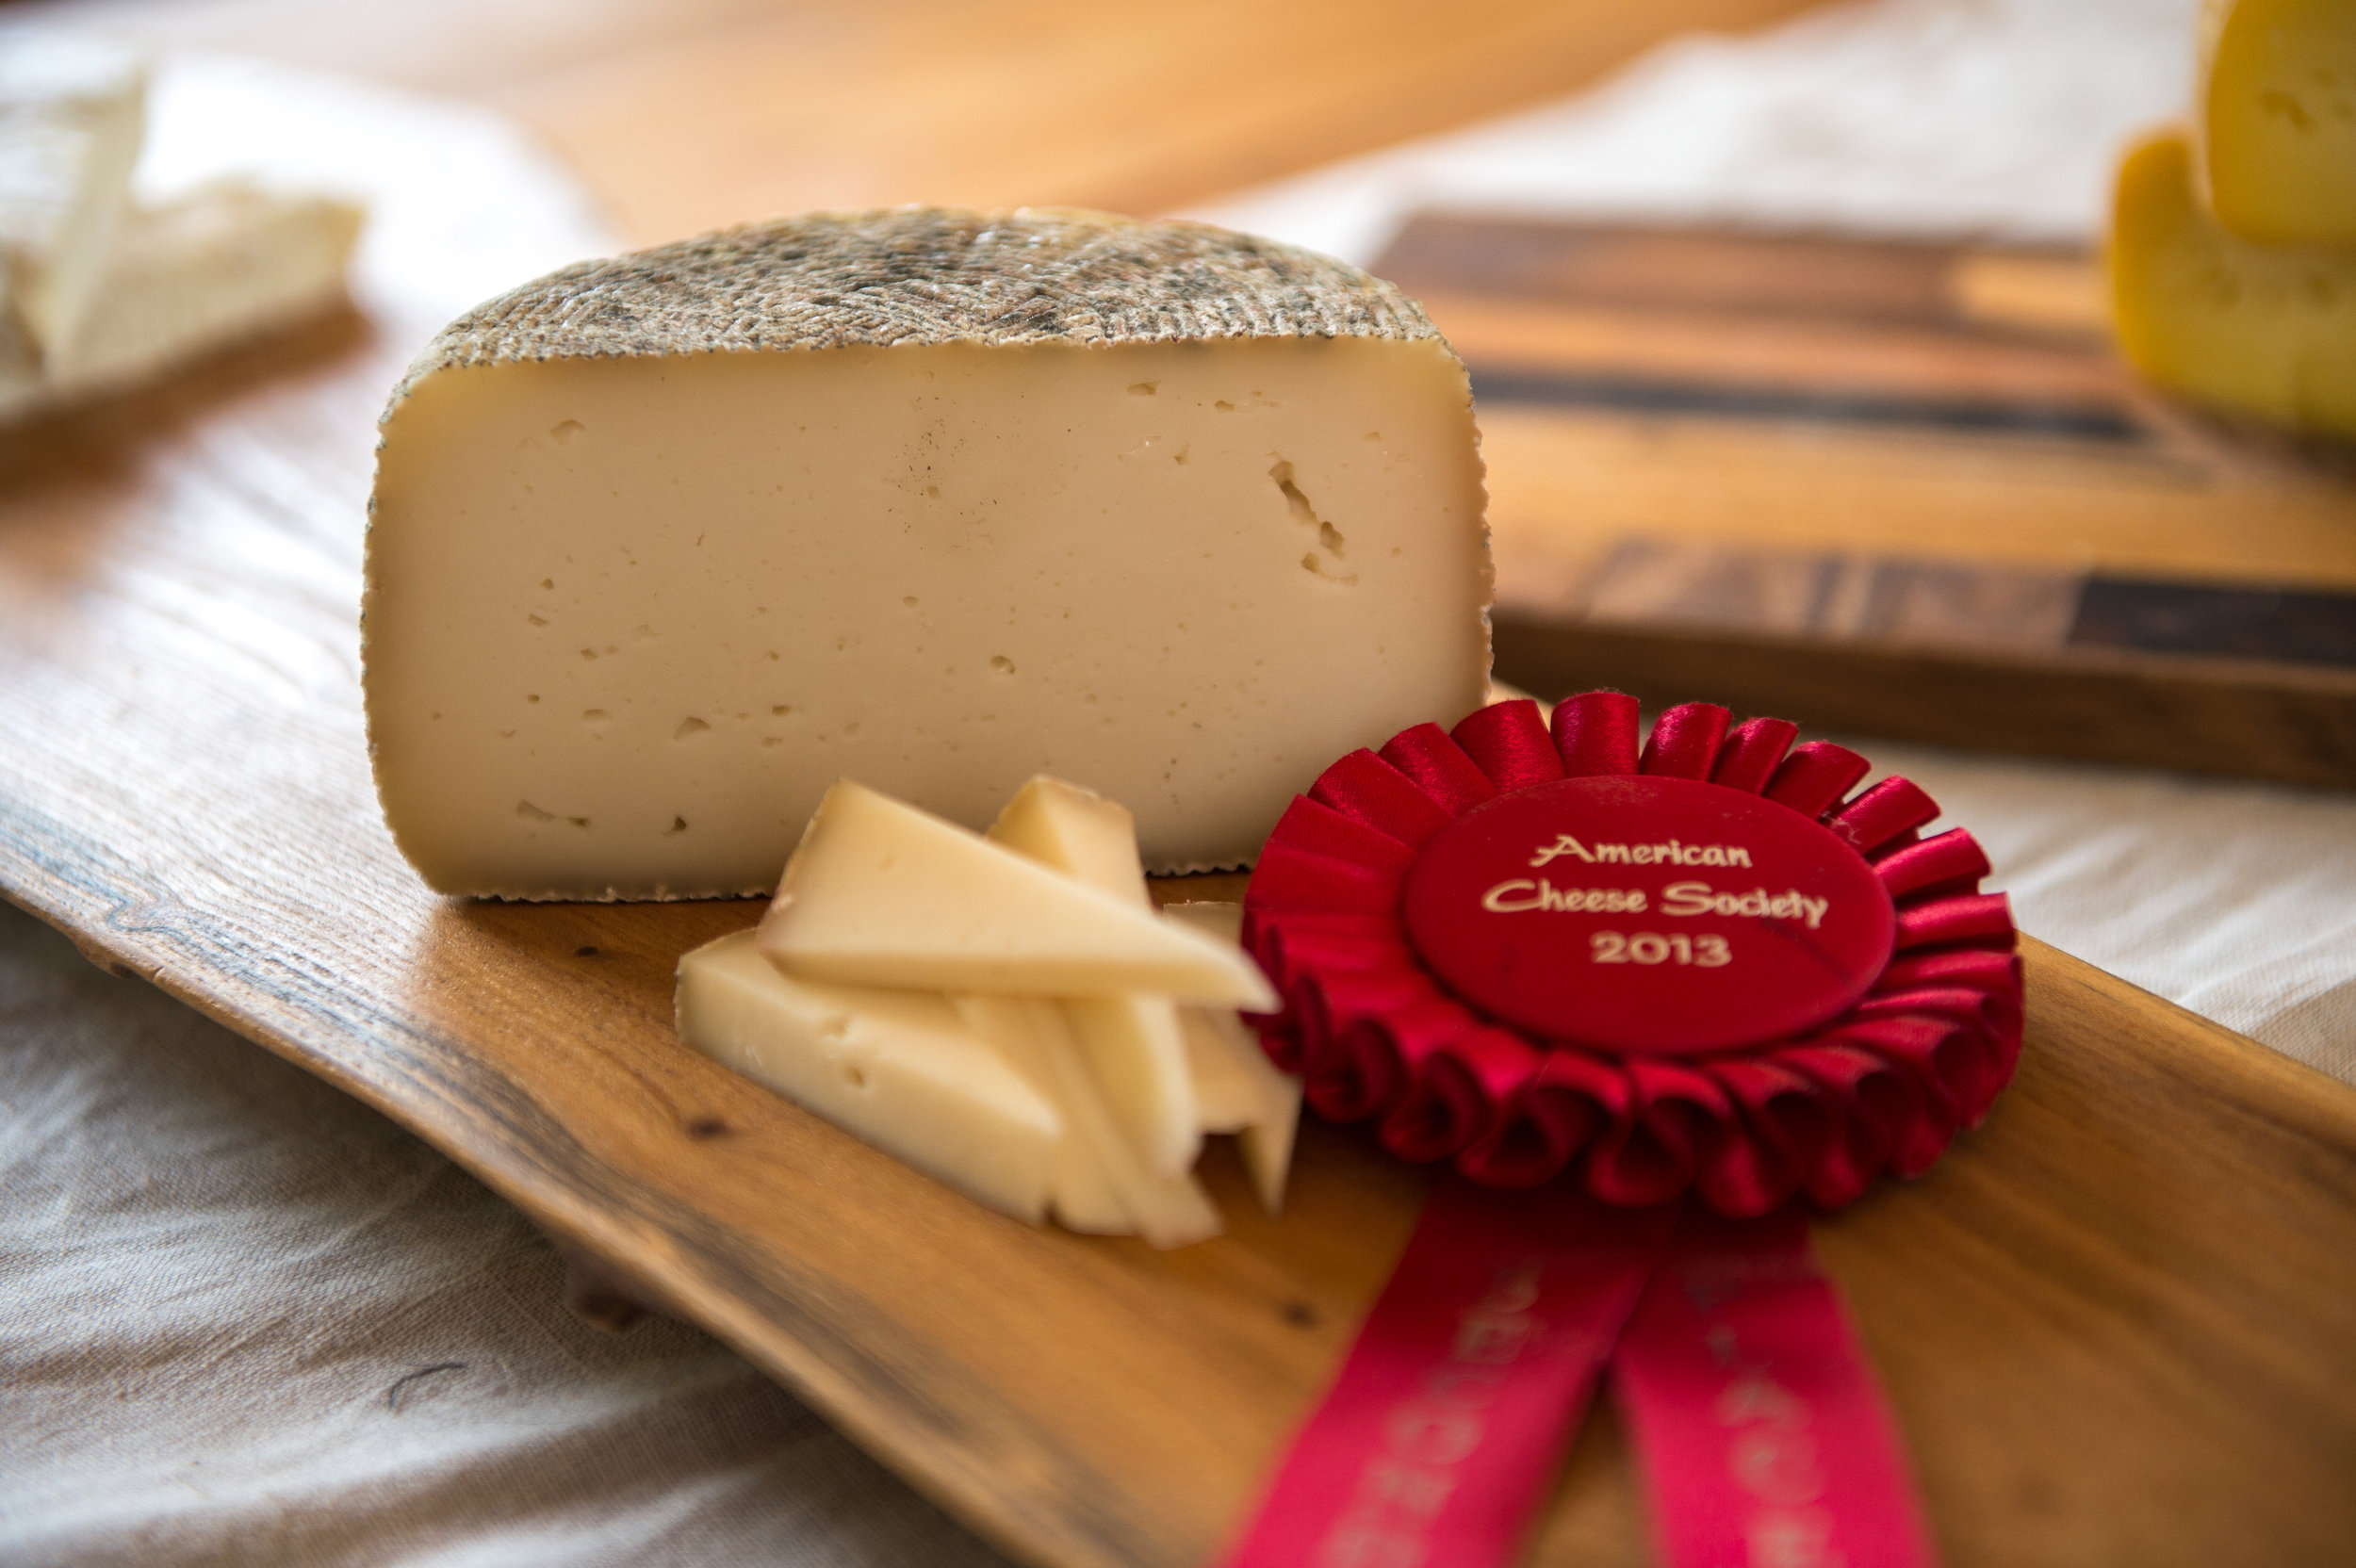 Esmontonian    2nd Place, American Cheese Society, American Made/International Style 2013   Raw goat's milk  Natural rind, semi-firm, enzymatic  Kid rennet  Aged on farm minimum 60 days  2.2 pounds (average weight) per wheel  Caromont Farm is close to the tiny village of Esmont – one road, no stoplight, and the kind of small town post office of a bygone era. This cheese is named for our home town. A small rustic tomme, made in an Italian basket mould. The Esmontonian begins with notes of minerality, a touch of citrus, and finishes with a delicate earthy aroma and a toasted maple note. With age expect a more picante note and a dry grana like texture.